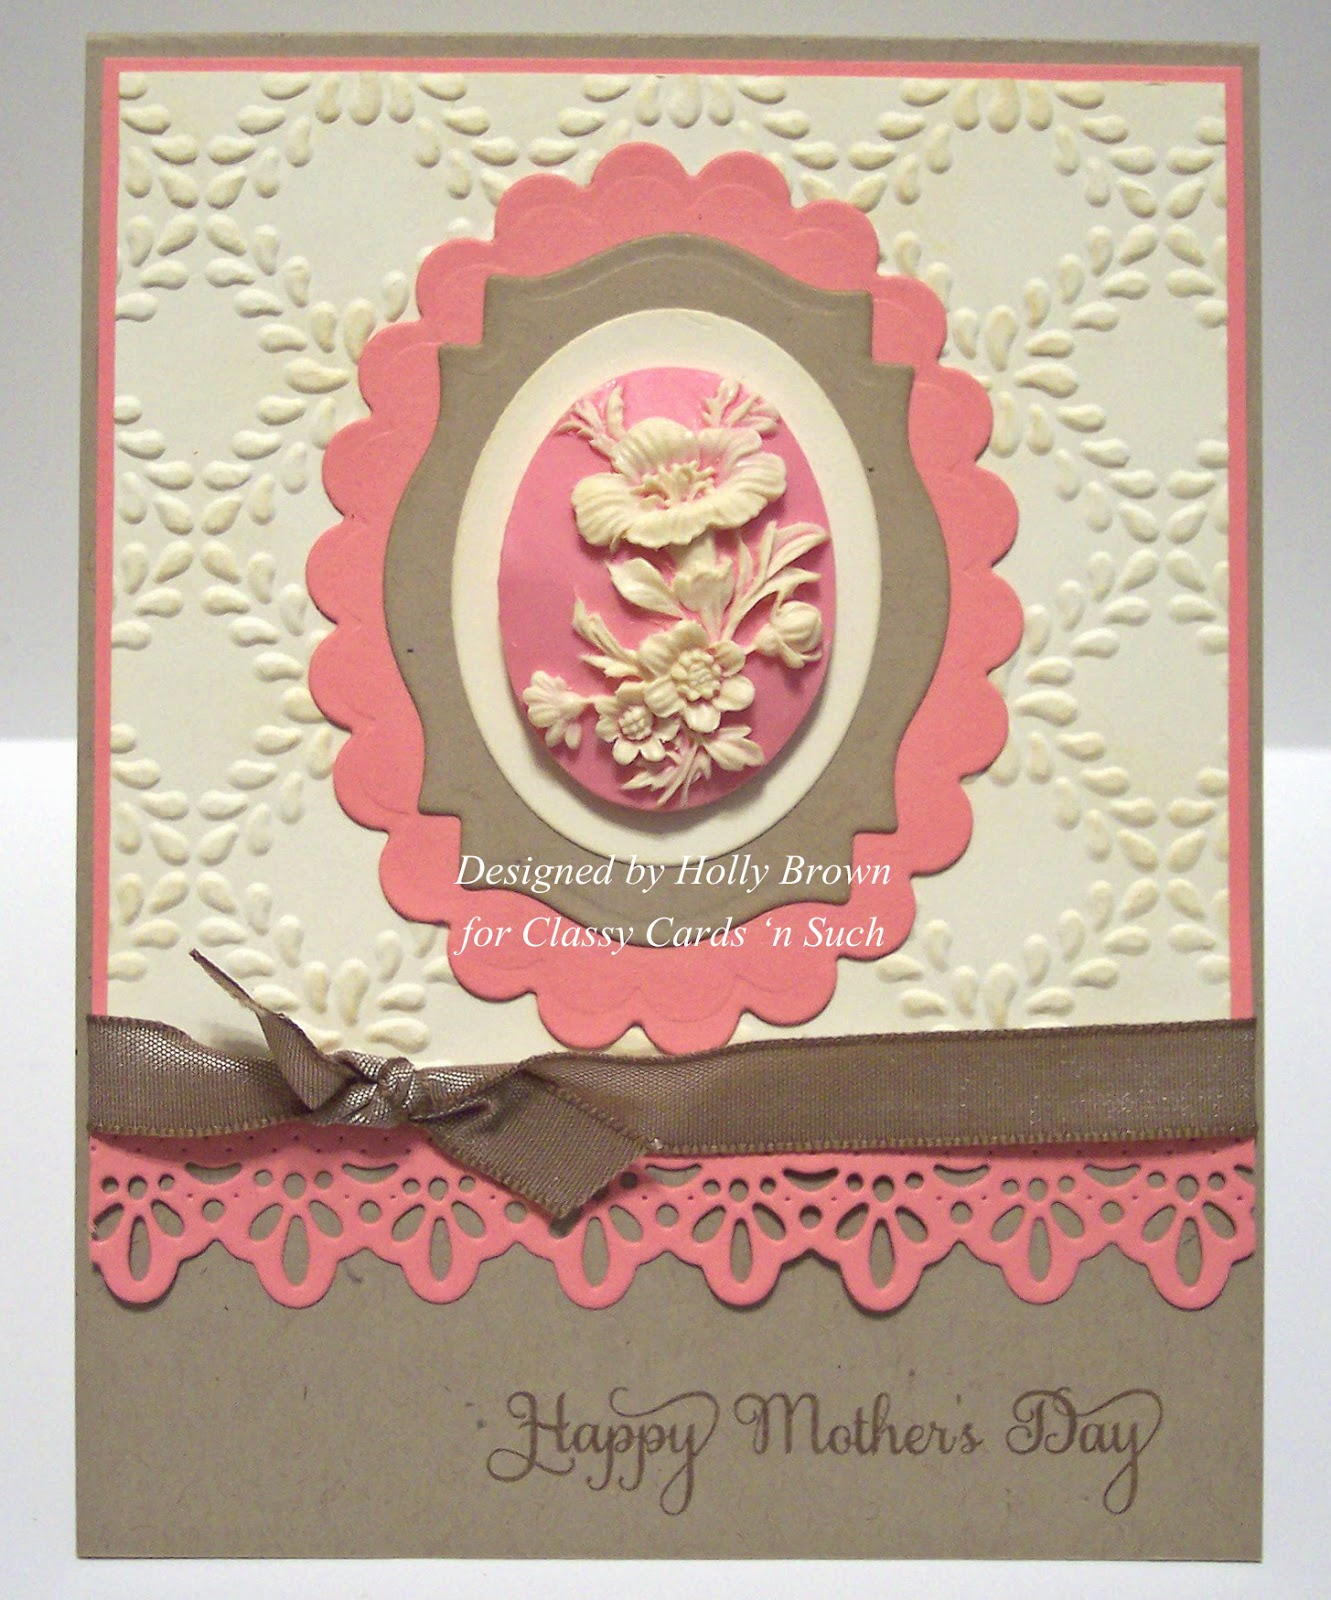 Classy cards 39 n such floral cameo for mother 39 s day for Classy mothers day cards